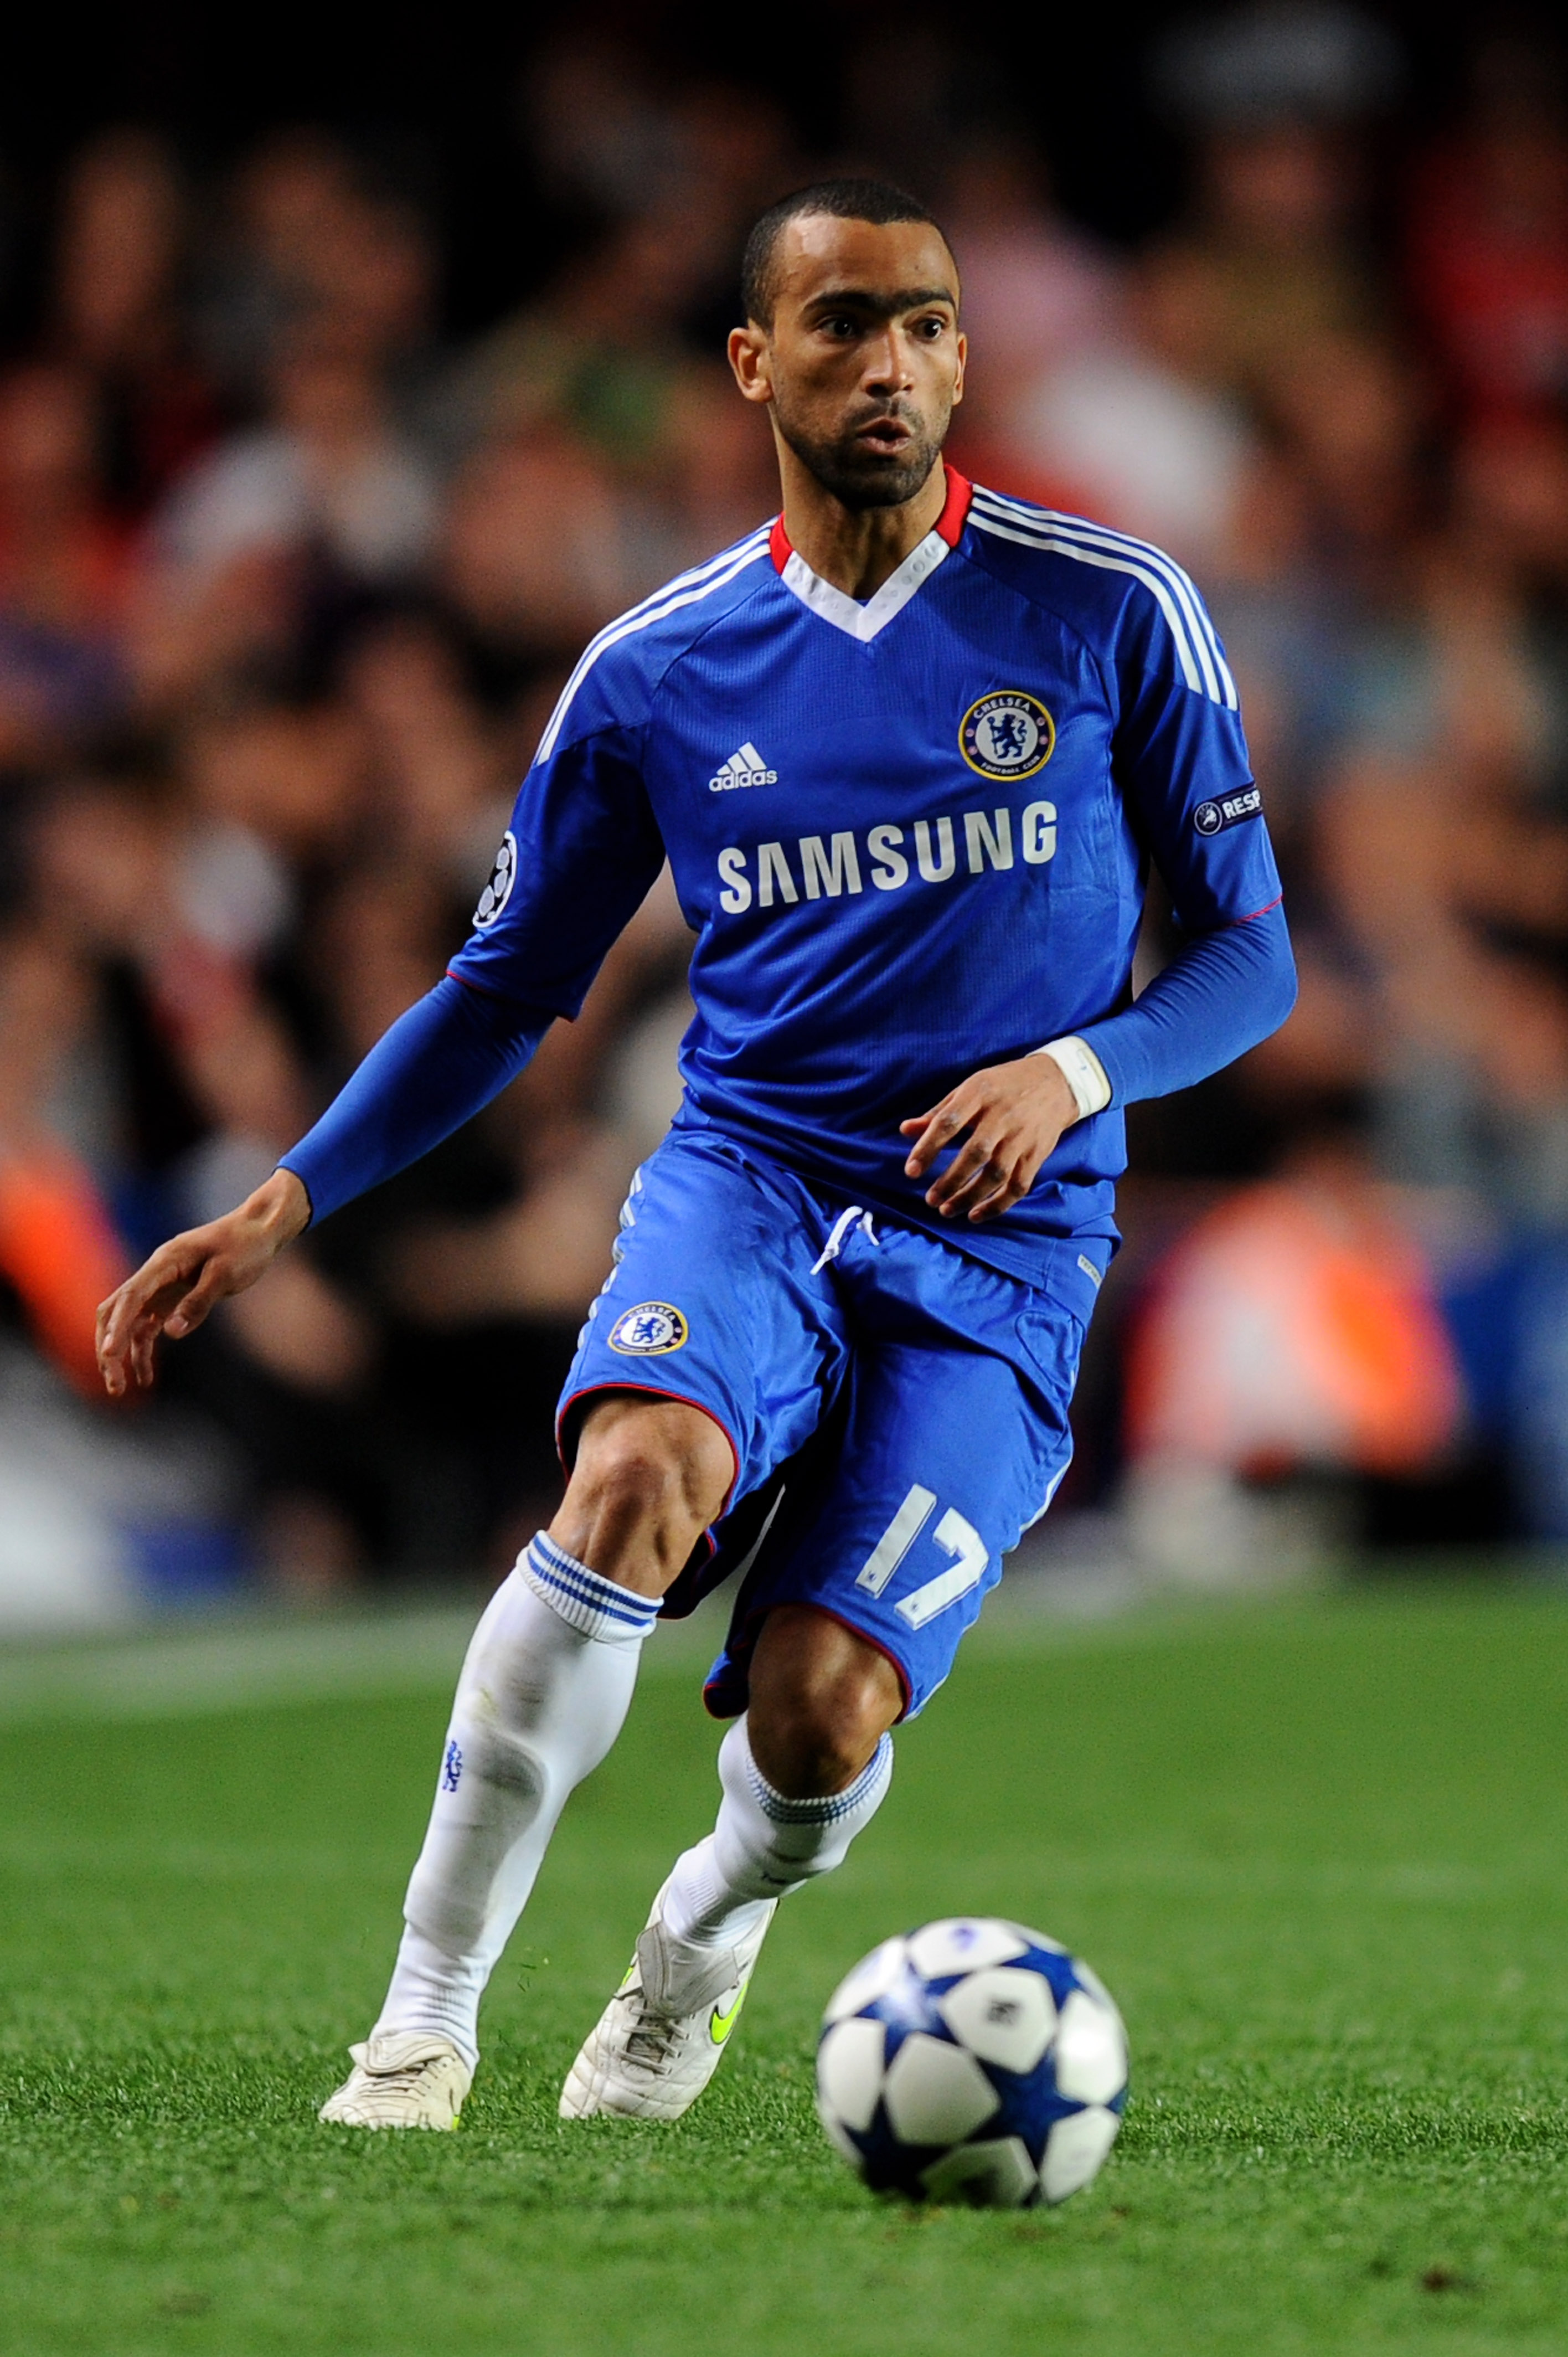 Bosingwa has failed to return to his best after his long-term injury